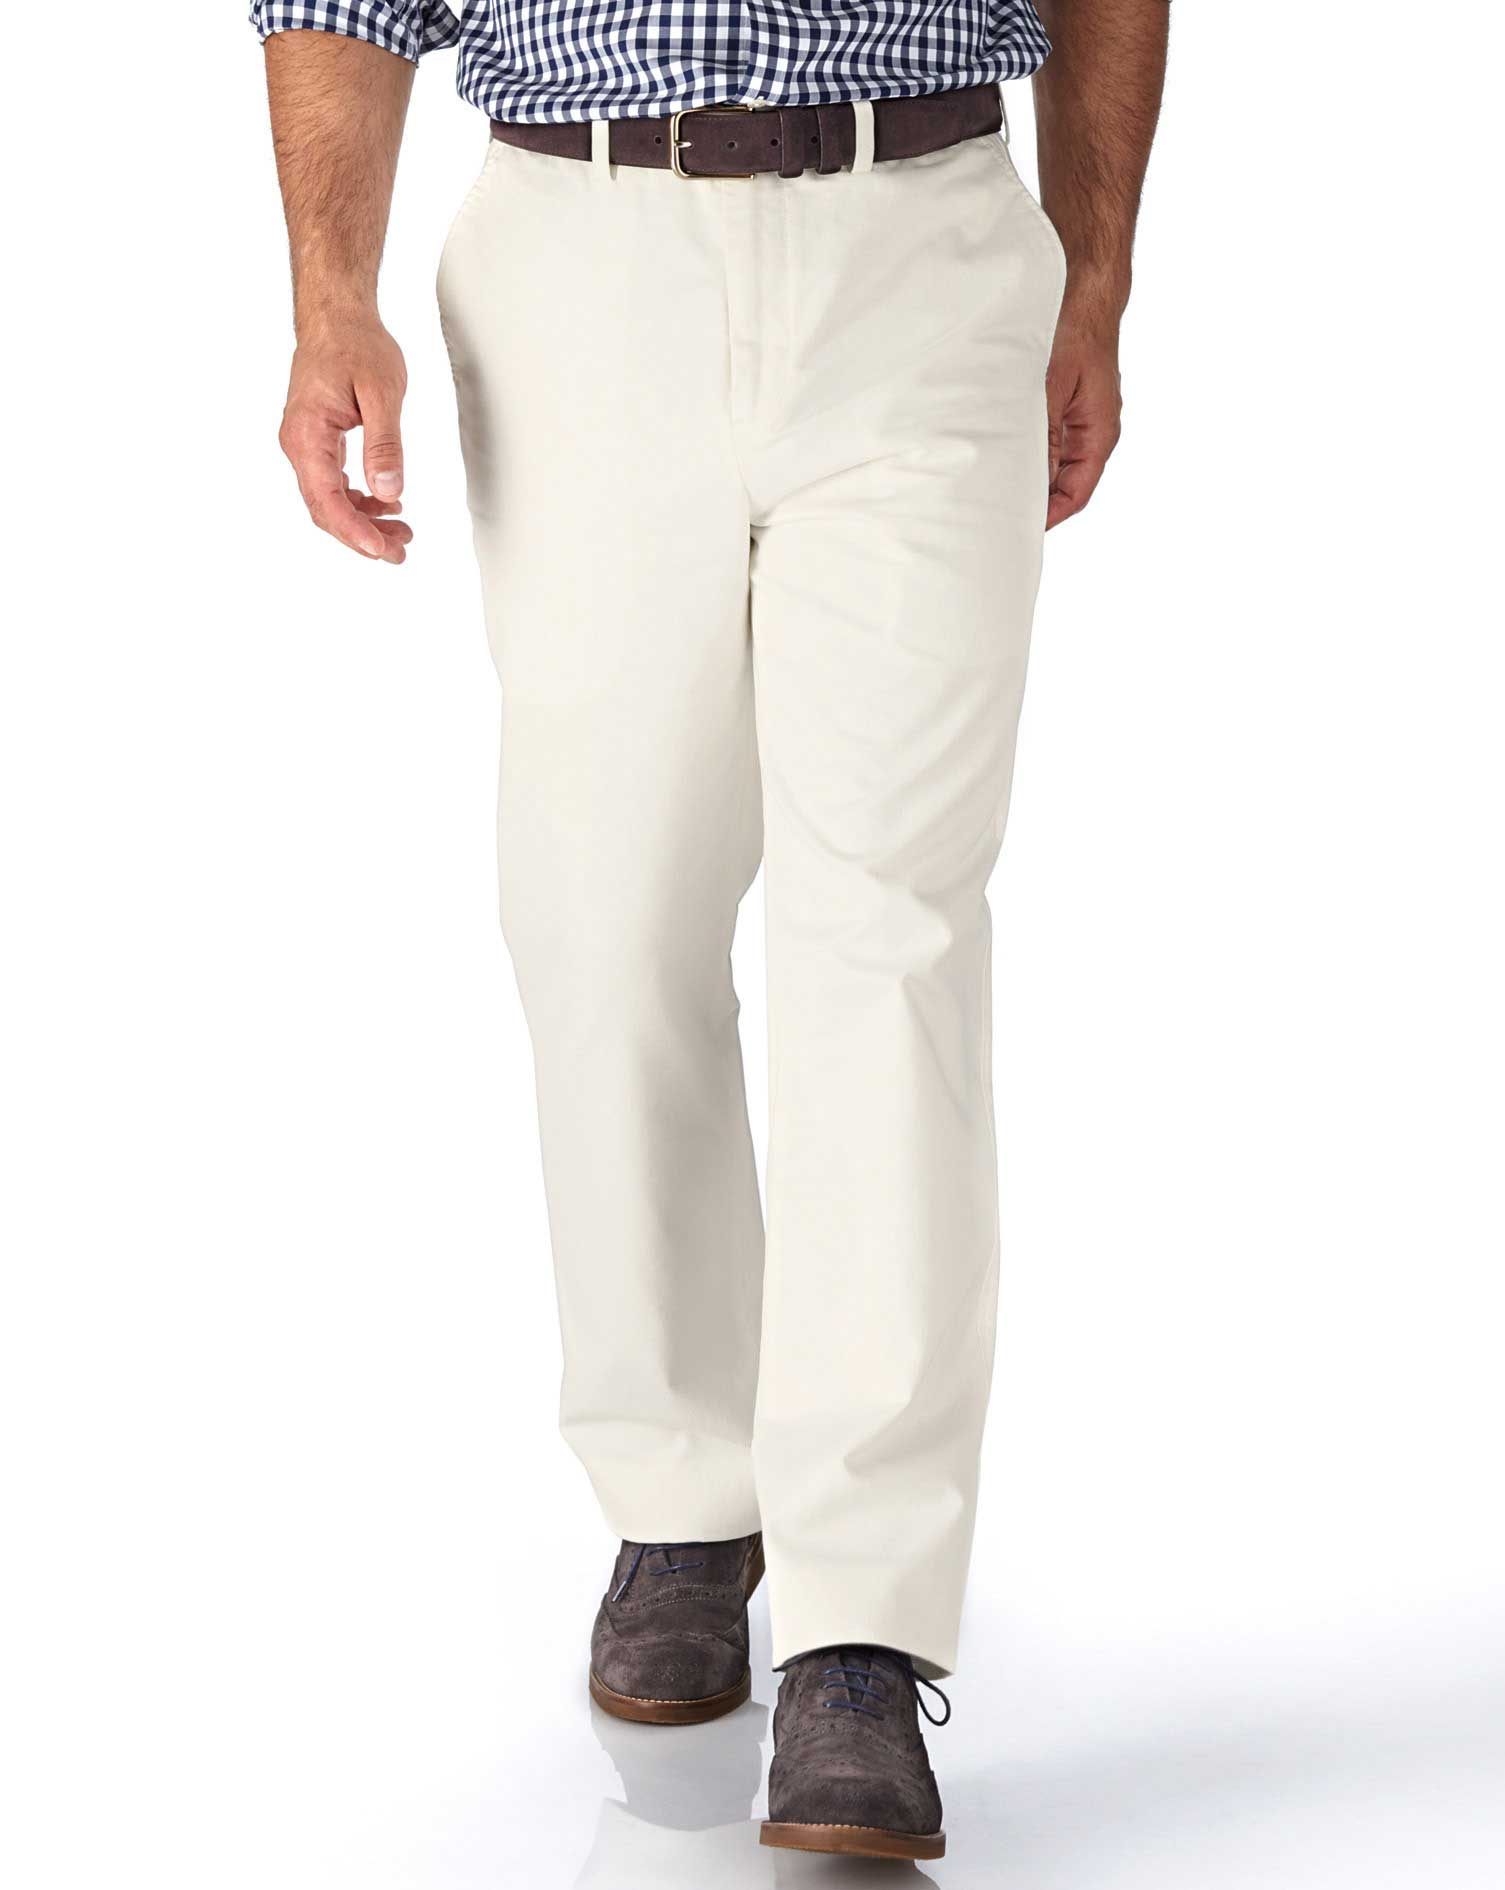 White Classic Fit Flat Front Weekend Cotton Chino Trousers Size W36 L29 by Charles Tyrwhitt